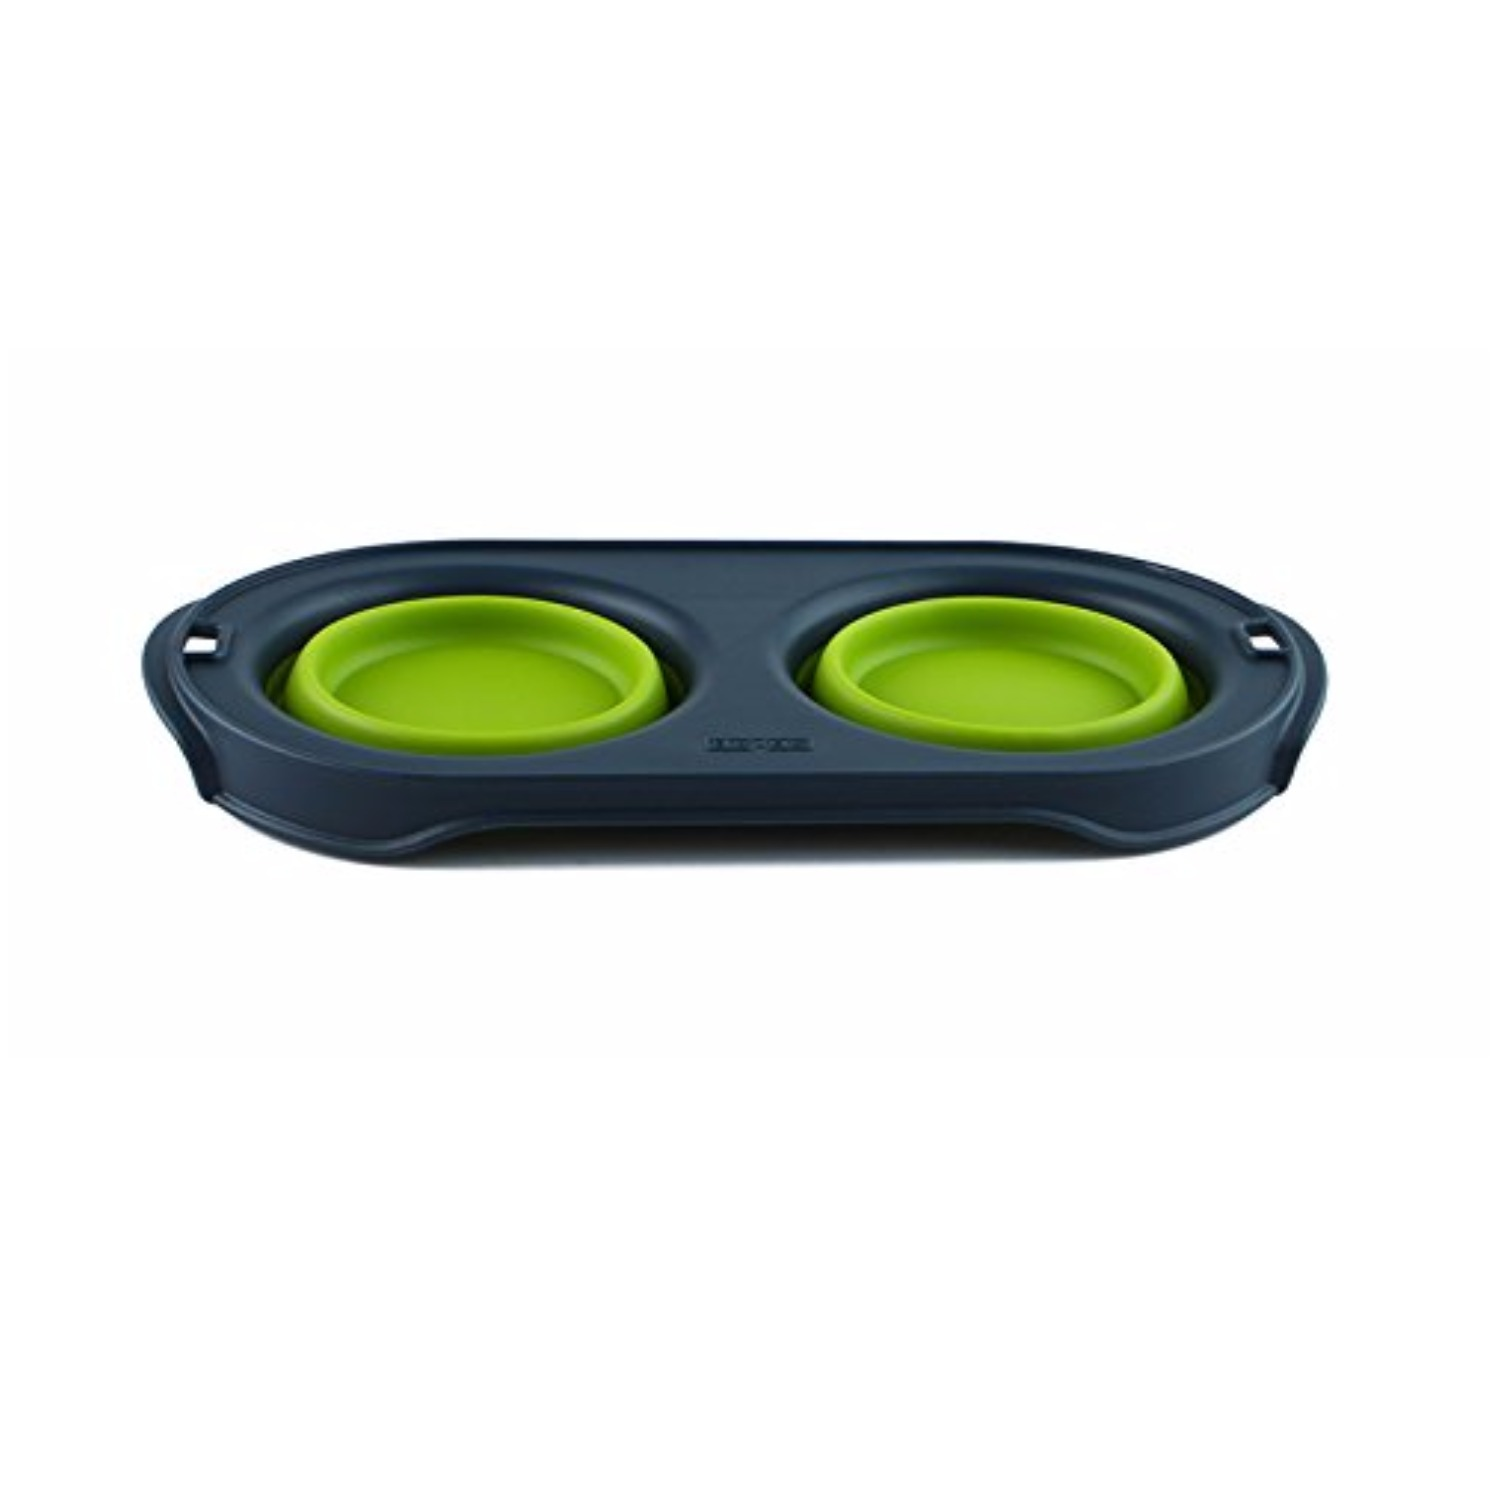 Dexas Popware for Pets Double Bowl Collapsible Travel Feeder